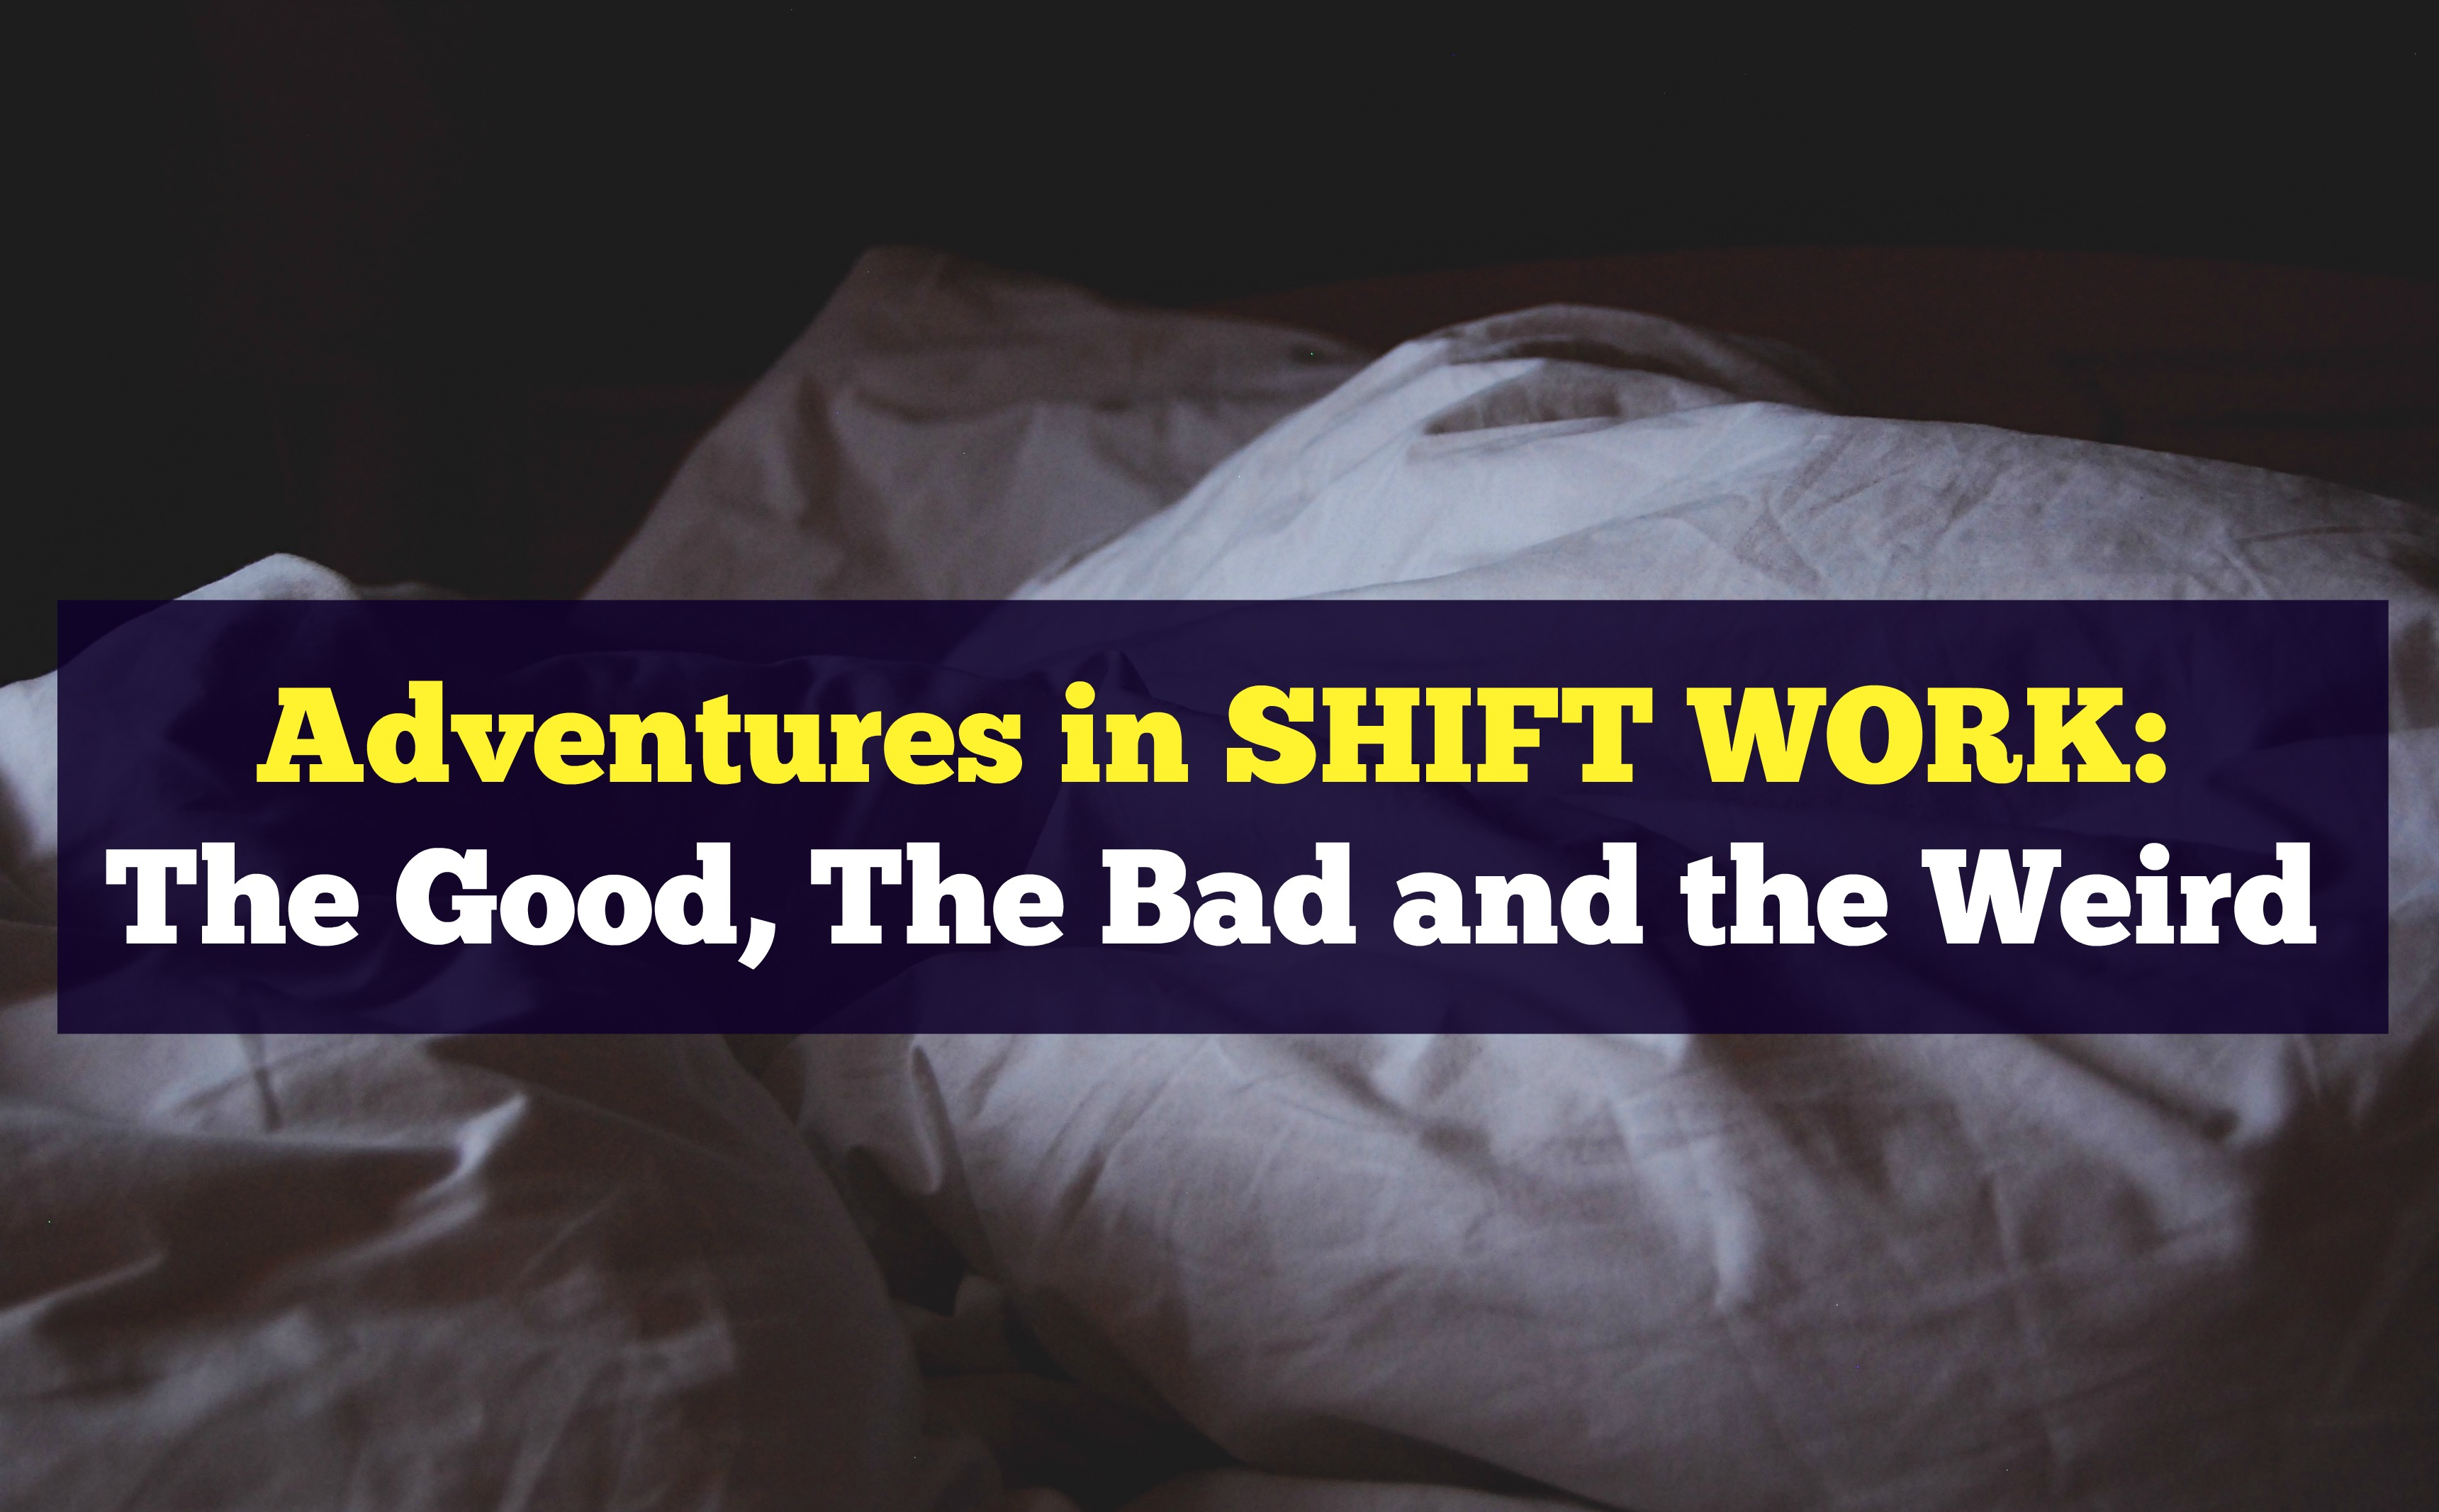 Adventures in Shift Work: The Good, the Bad and the Weird